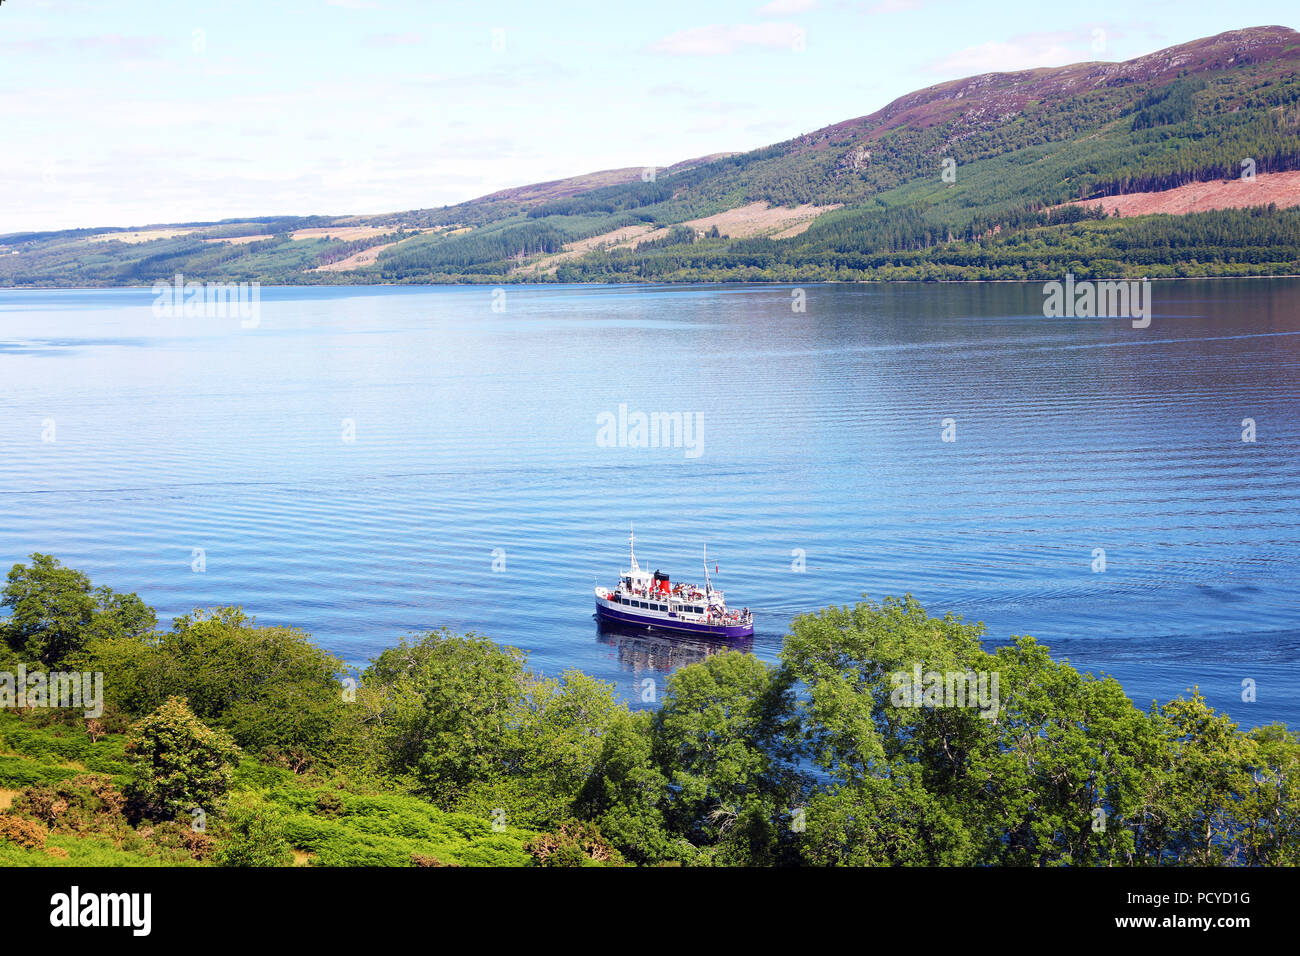 Loch Ness in the Scottish Highlands, Scotland - Stock Image